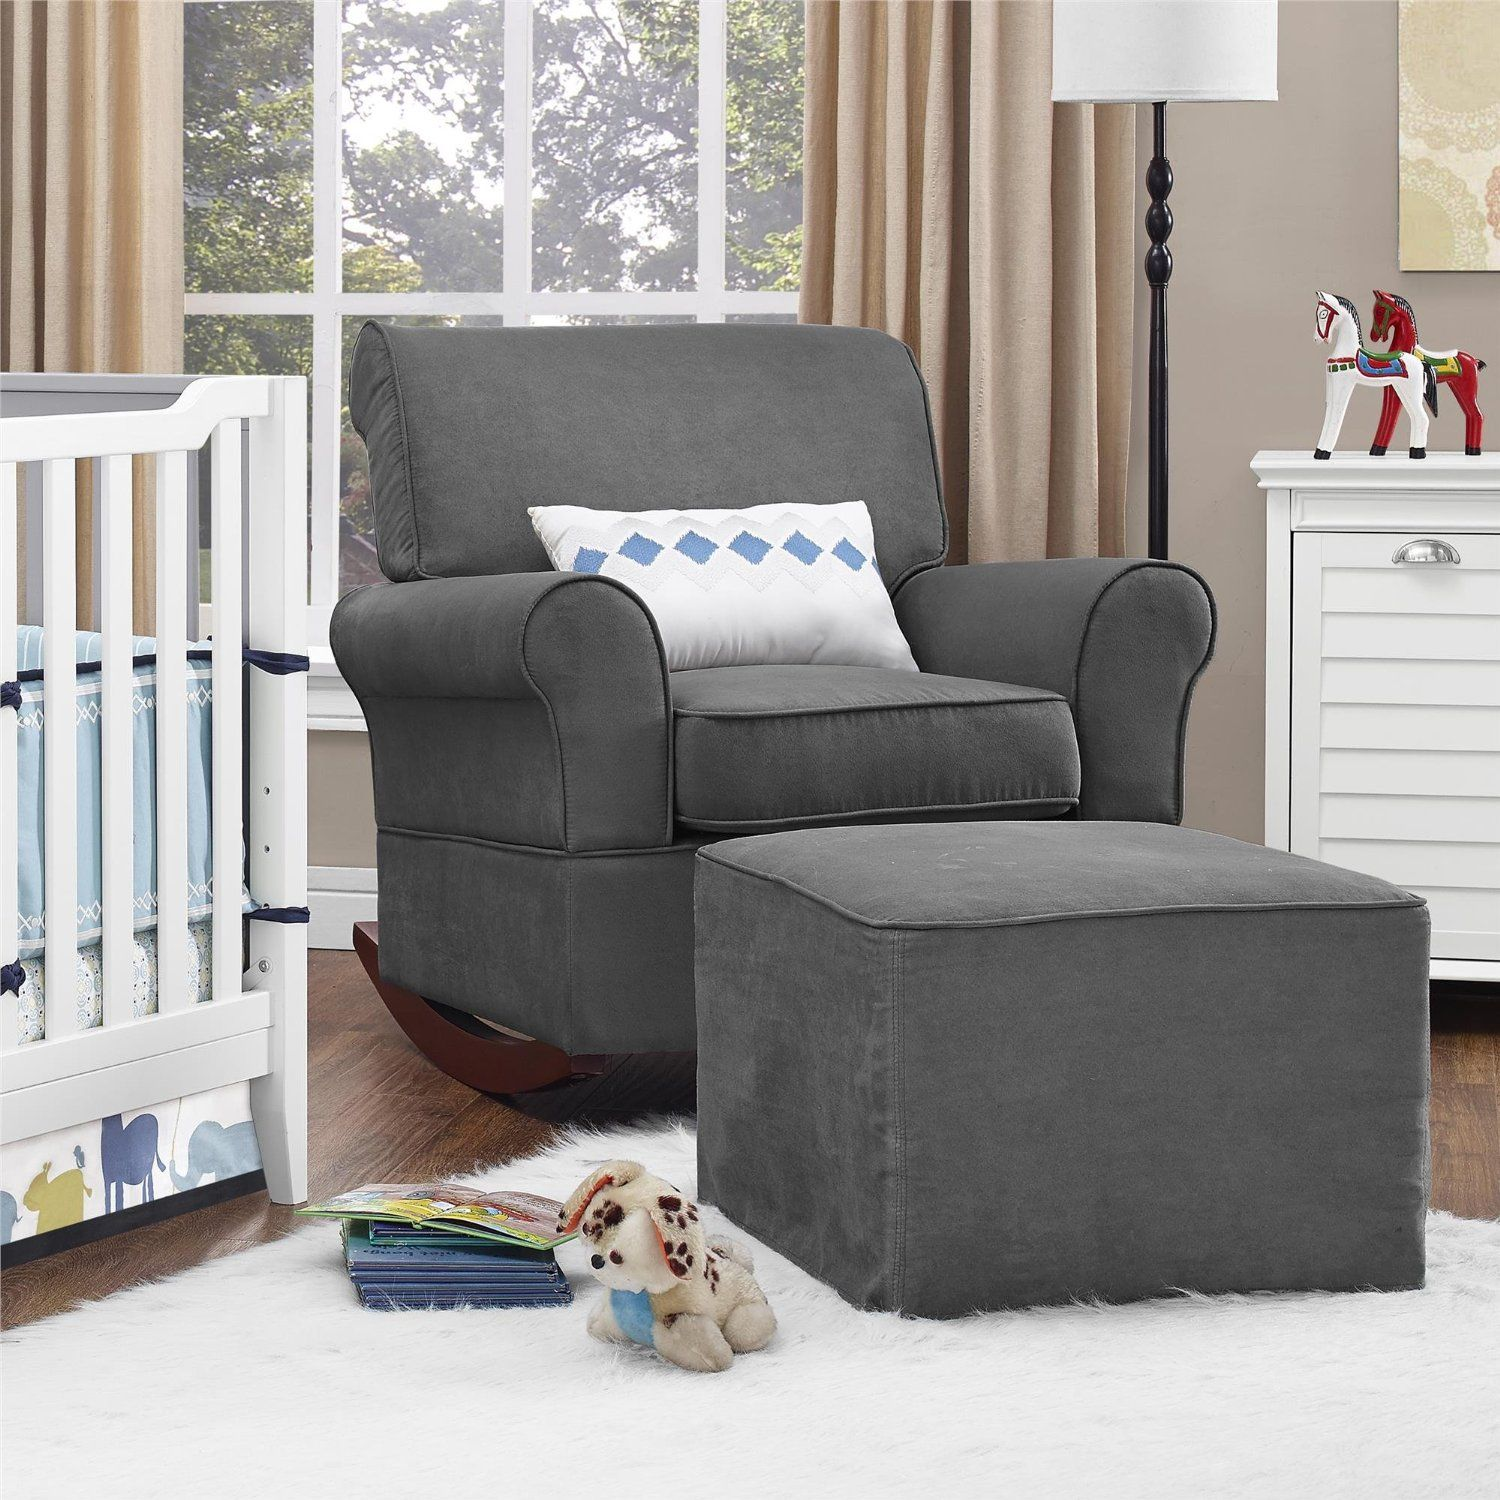 Nursery rocker, Rocker chair nursery, Dorel living